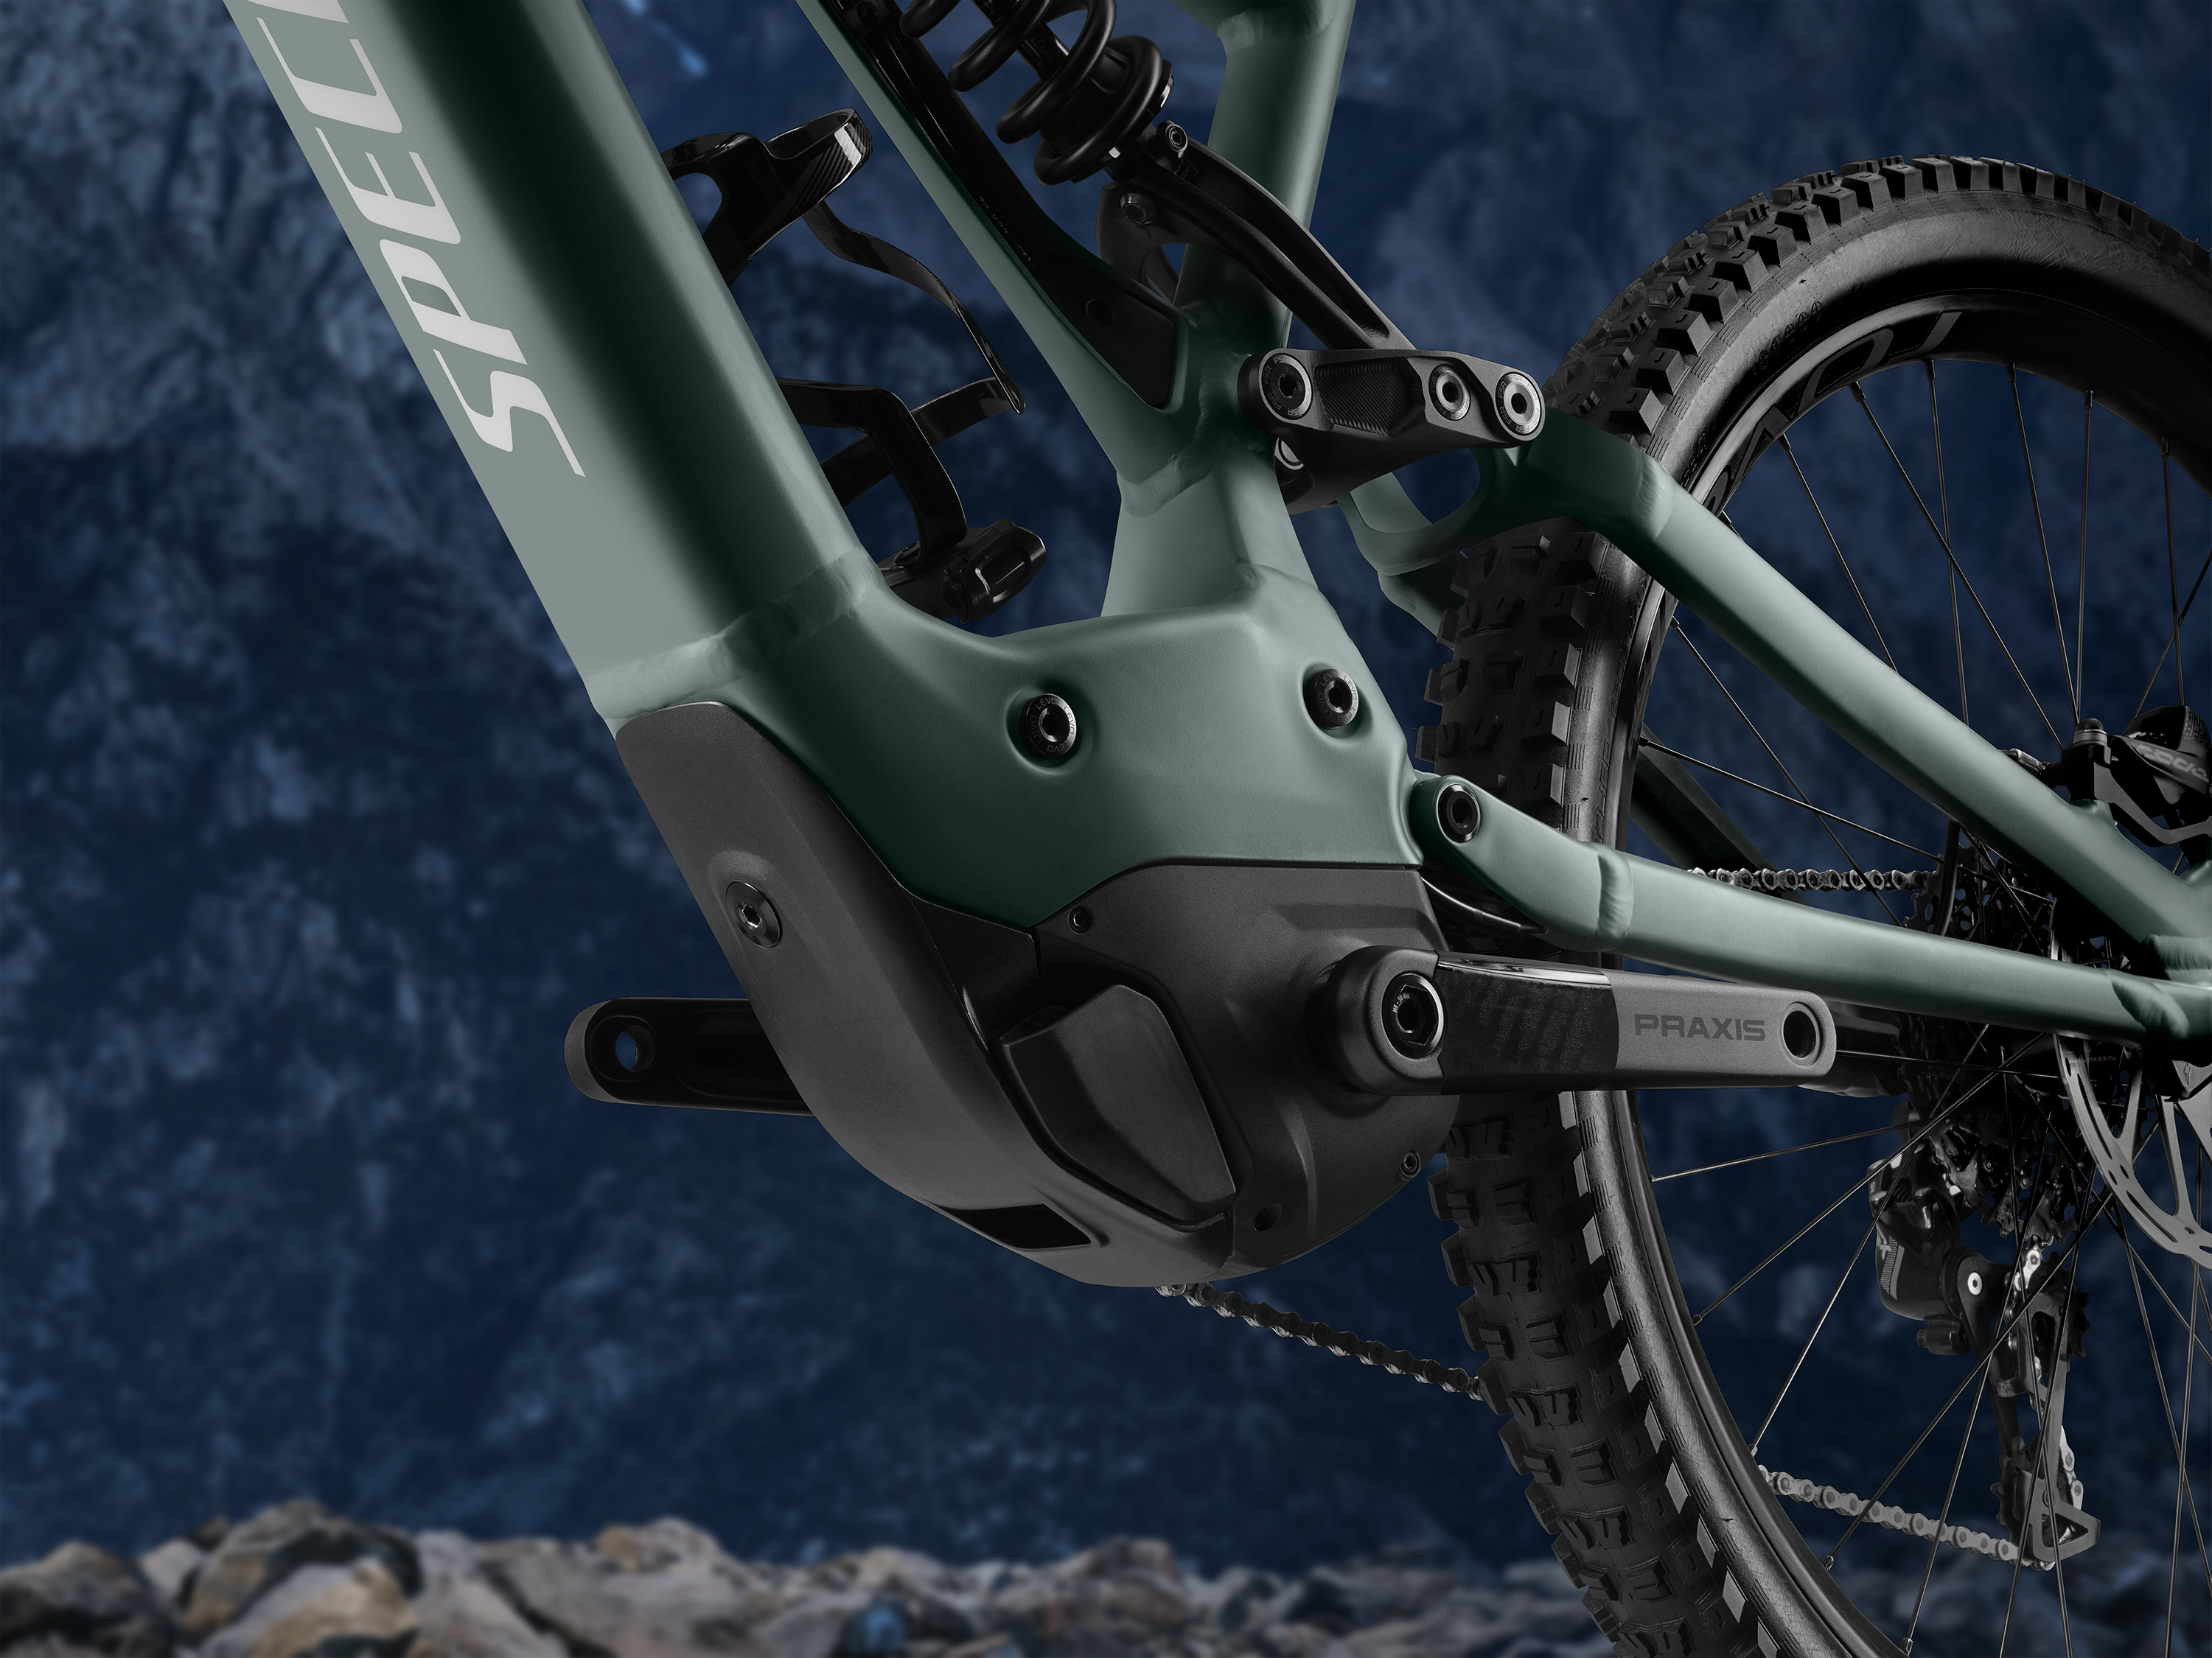 Specialized like - die Integration des Motors